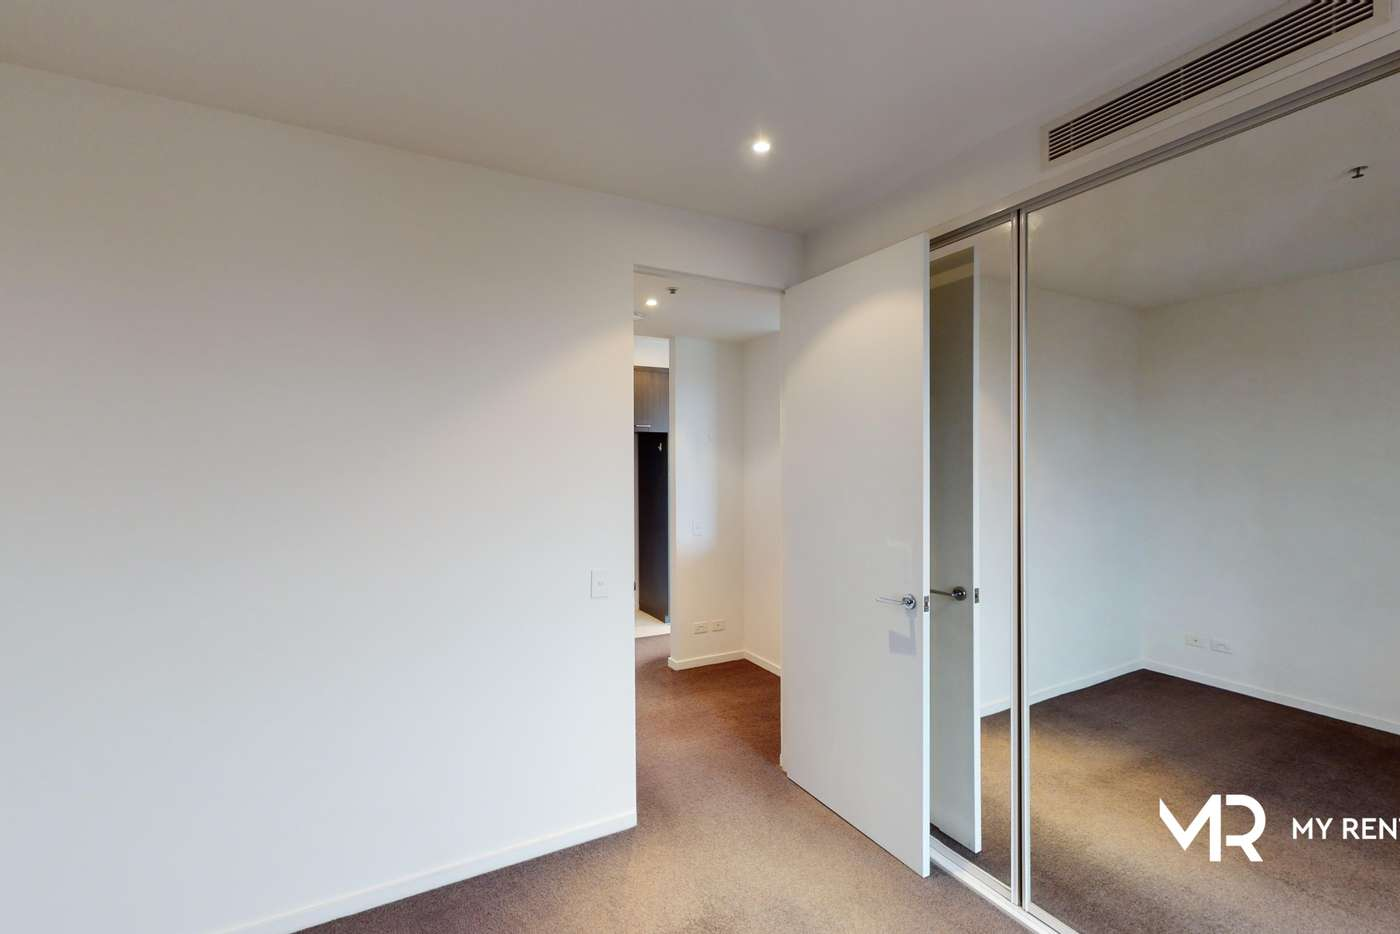 Fifth view of Homely unit listing, 516/2 McGoun Street, Richmond VIC 3121